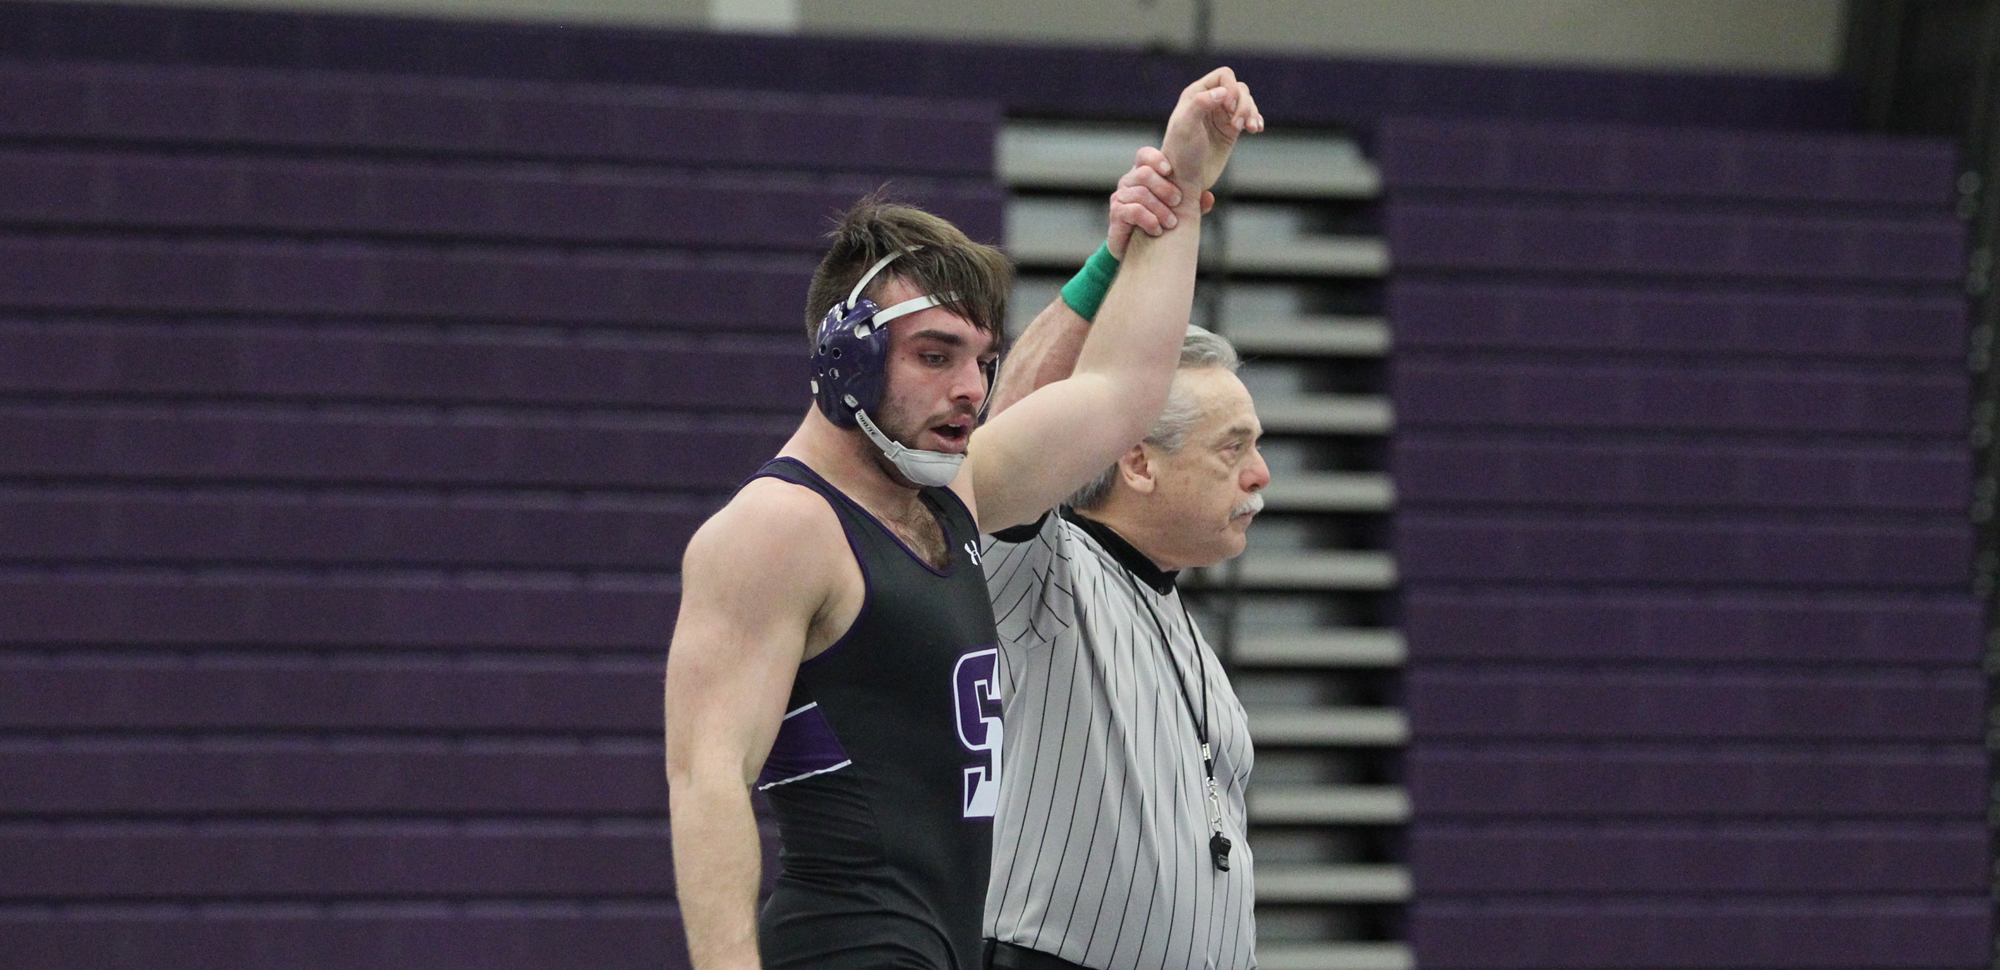 Dan D'Agostini became just the third wrestler in Scranton with at least 100 career wins on Friday night at the Lackawanna Quad Meet.